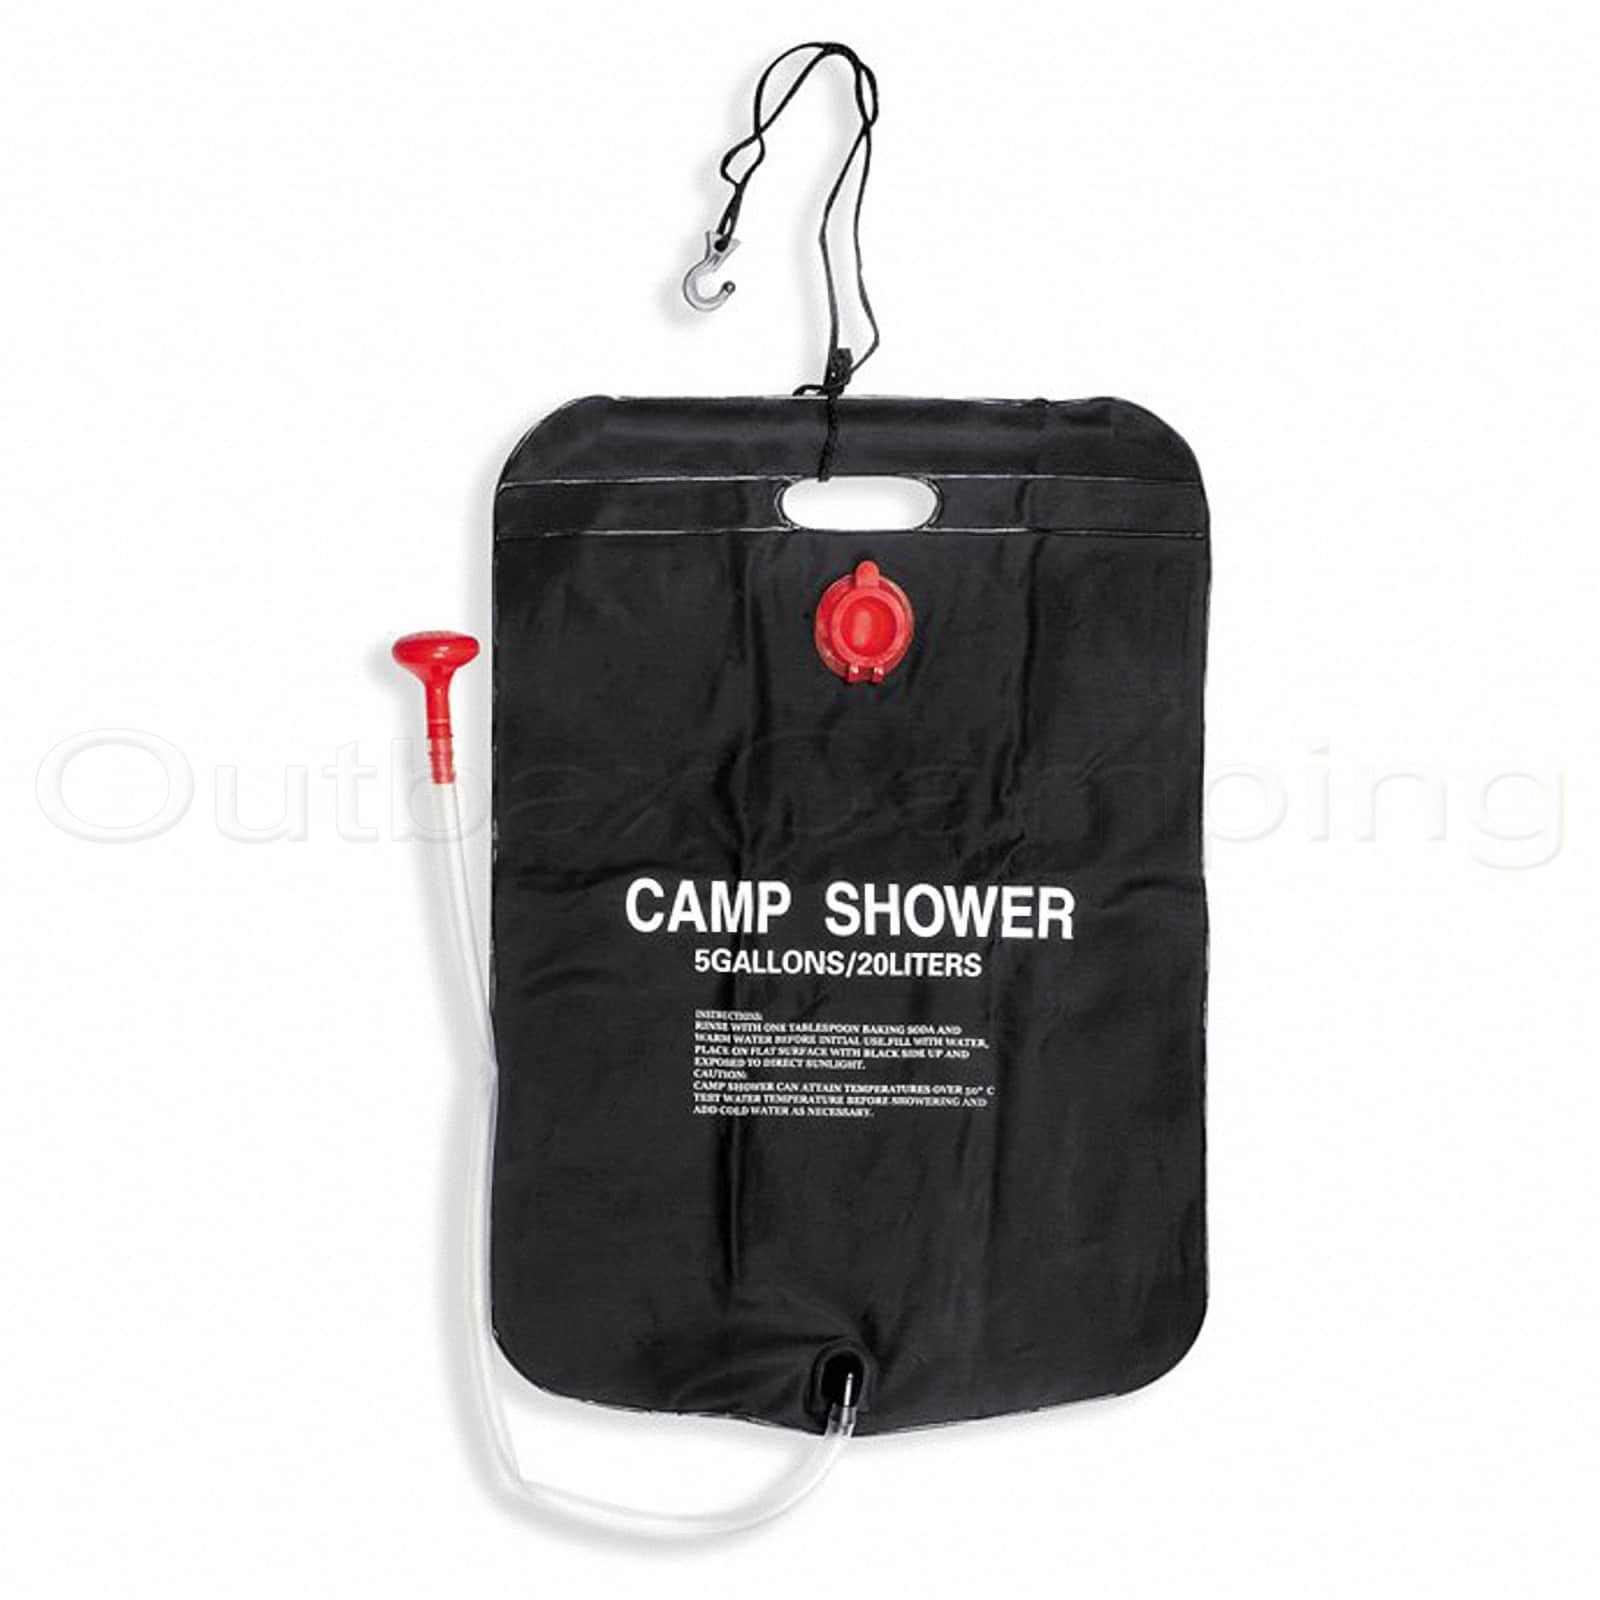 Portable Shower Bag : Bestway solar heated portable shower bag outdoor camping